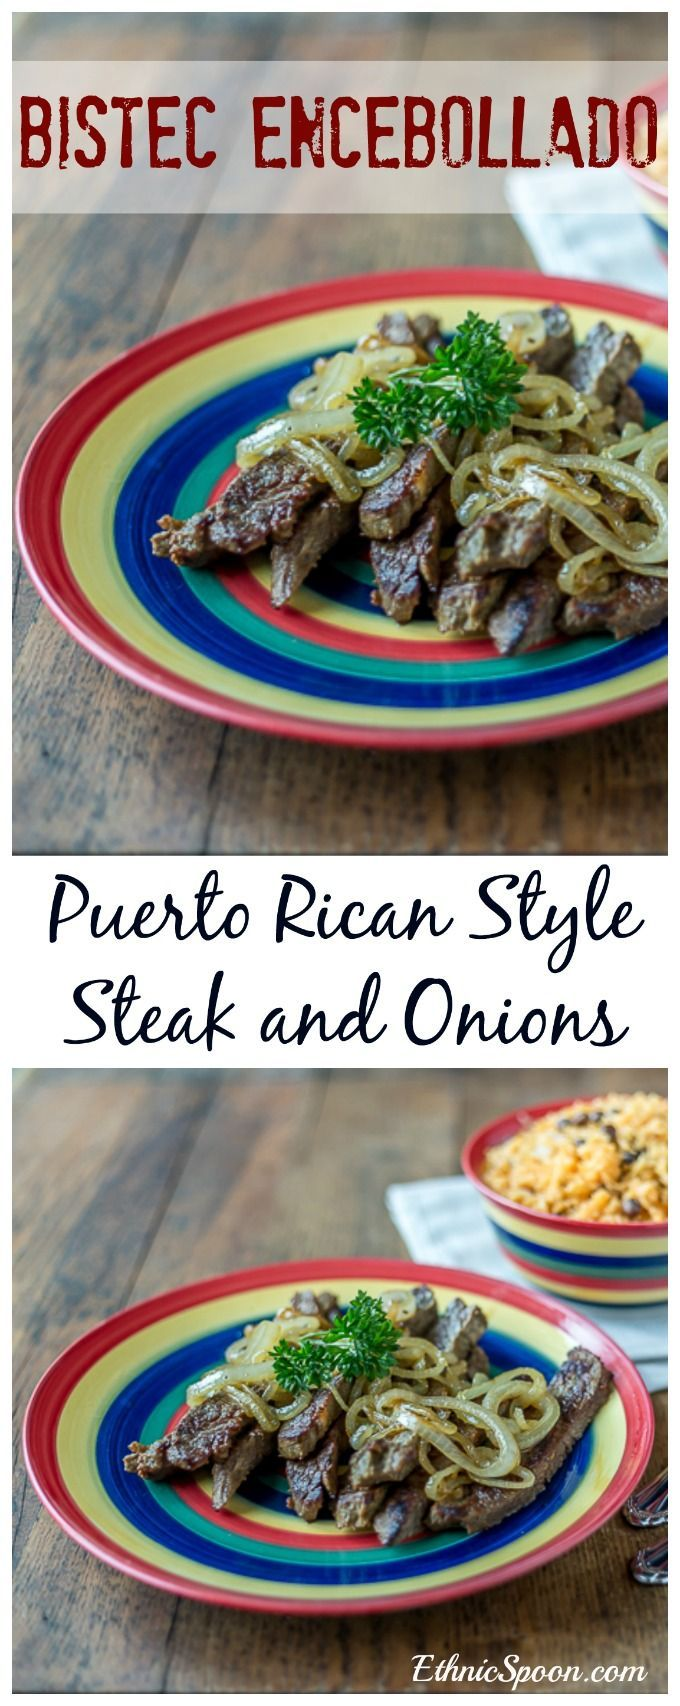 Puerto Rican style bistec encebollado or steak and onions with bold spices and an nice sear. Que Rico! #bistec #steak #puertoricanfood #latinfood #pr  | ethnicspoon.com